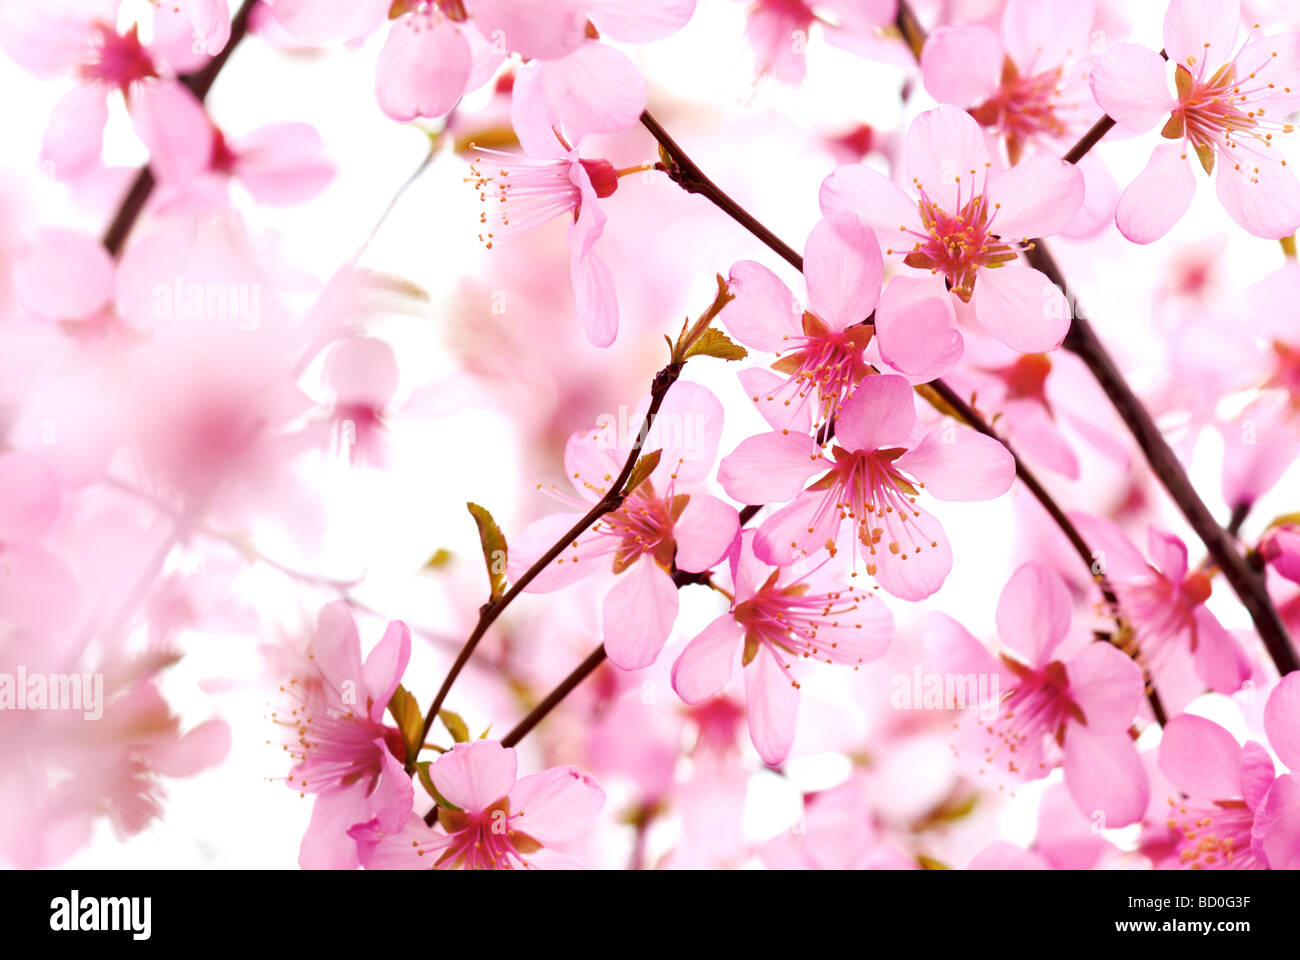 pink plum flower - Stock Image